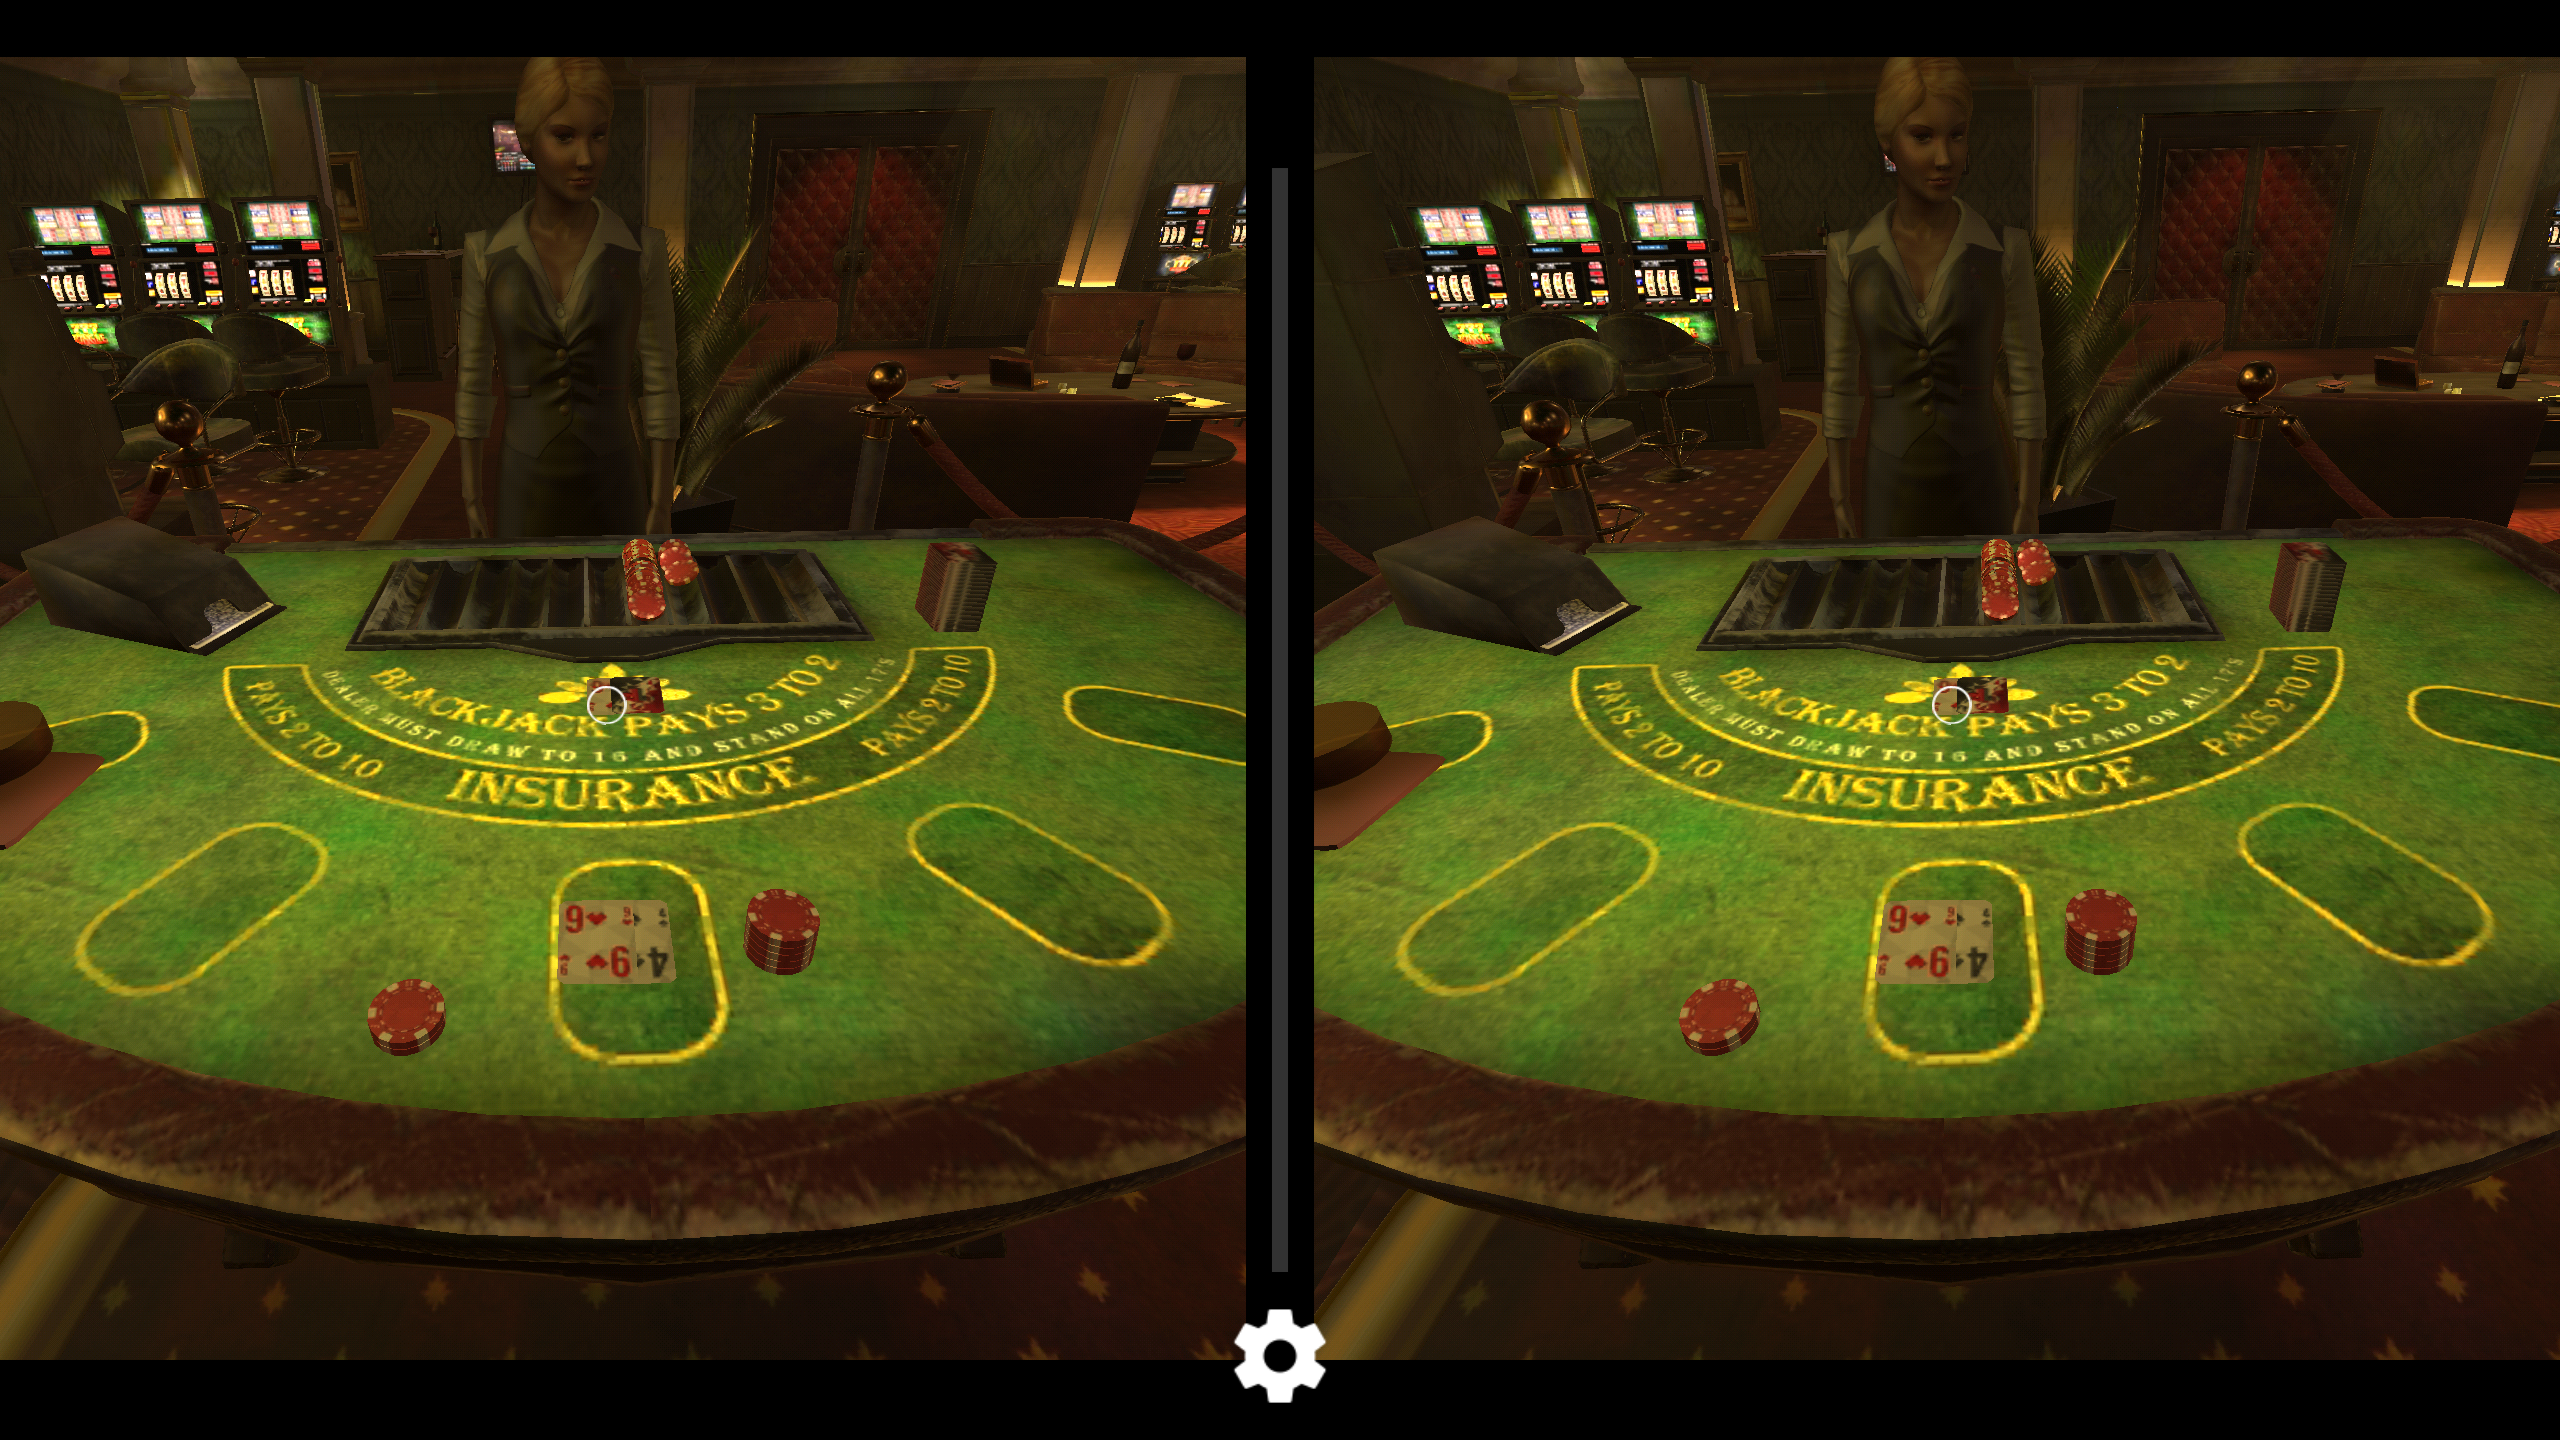 screenshot 1 Blackjack VR content image